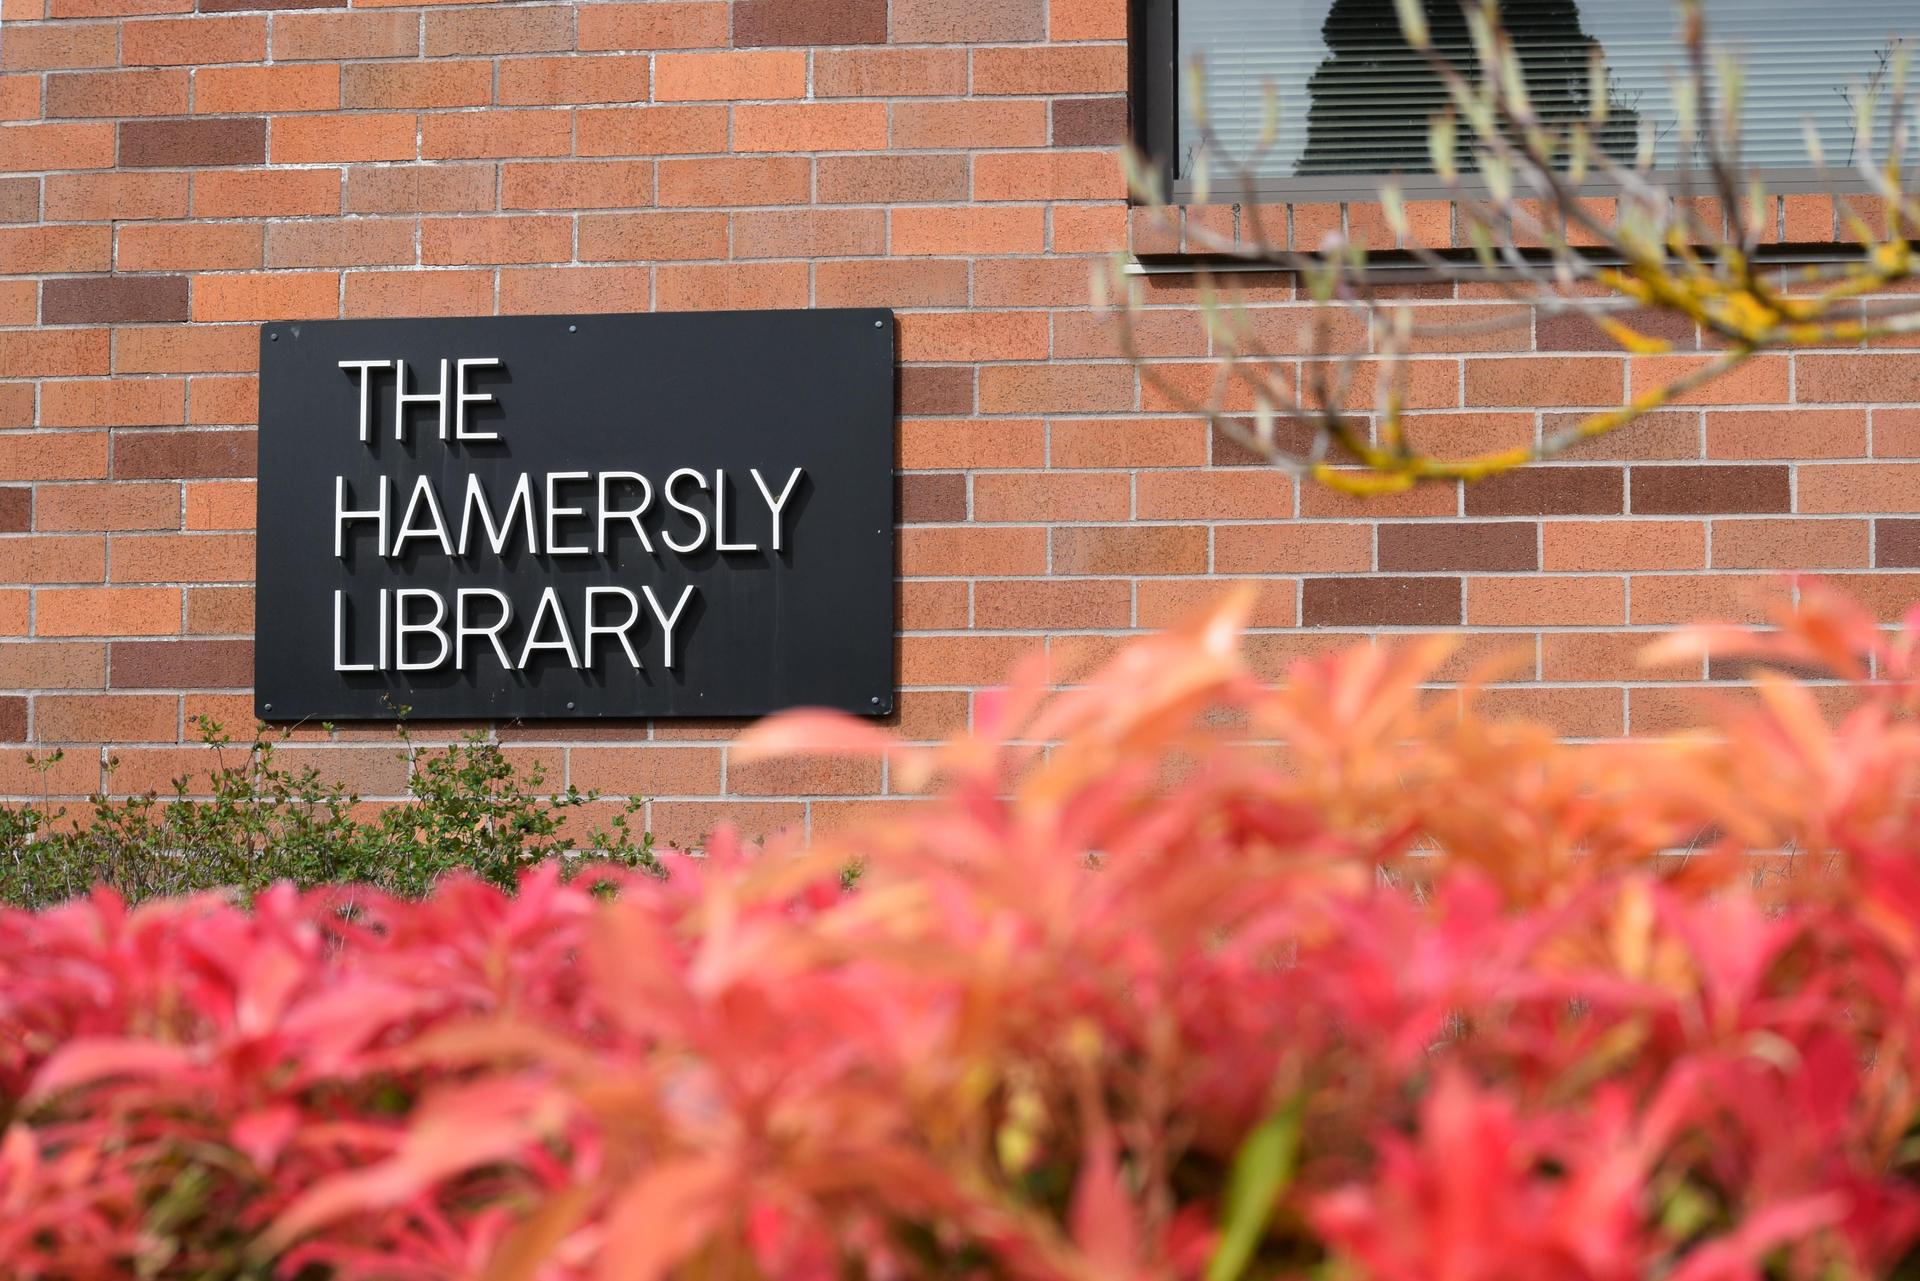 exterior of hamersly library, a brick building, with red foliage in foreground